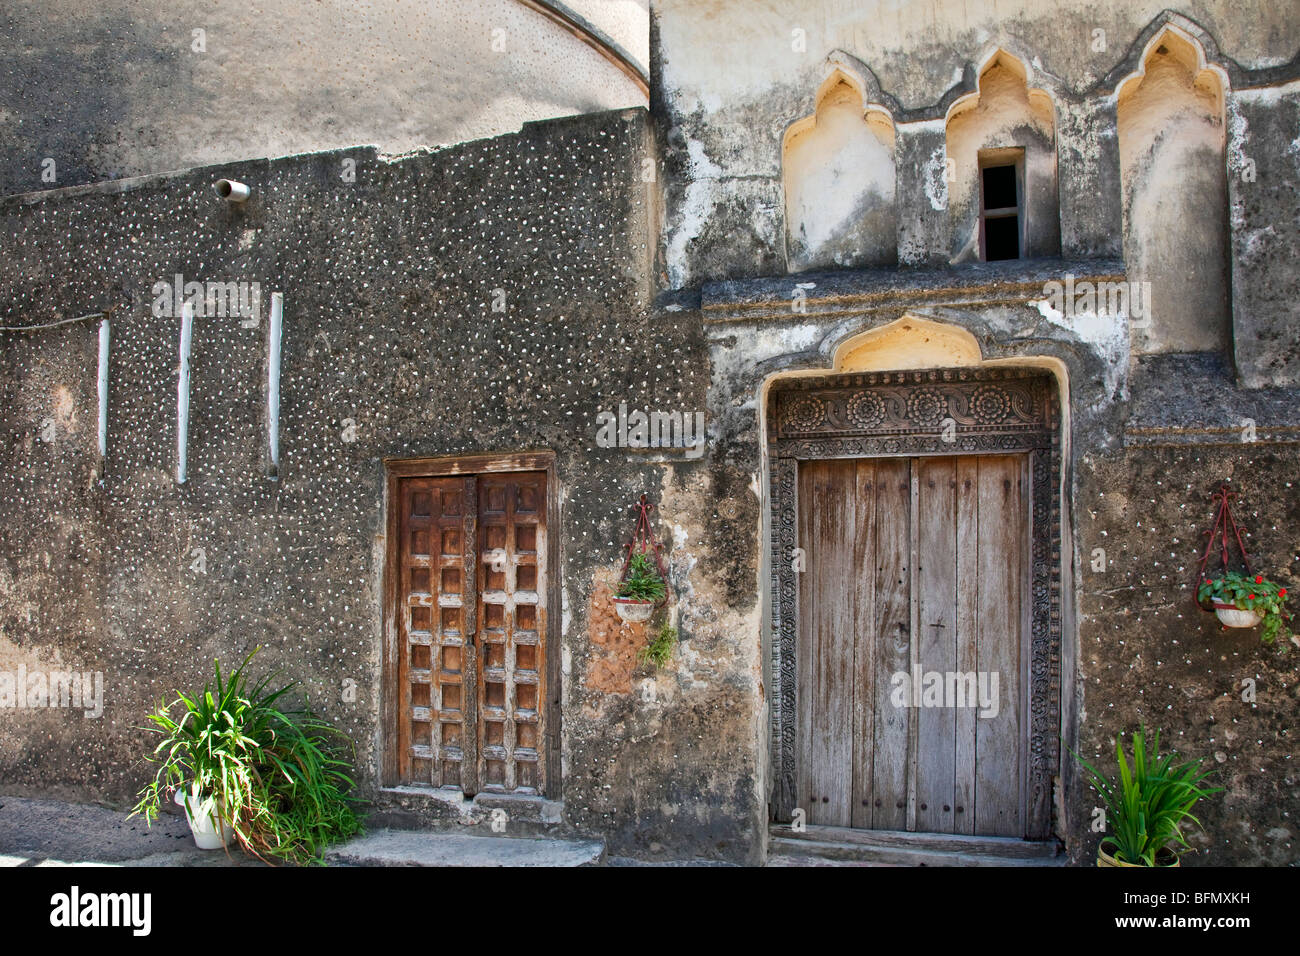 Tanzania, Zanzibar, Stone Town. Old doors of the Anglican Cathedral Church of Christ, its foundation laid at Christmas - Stock Image